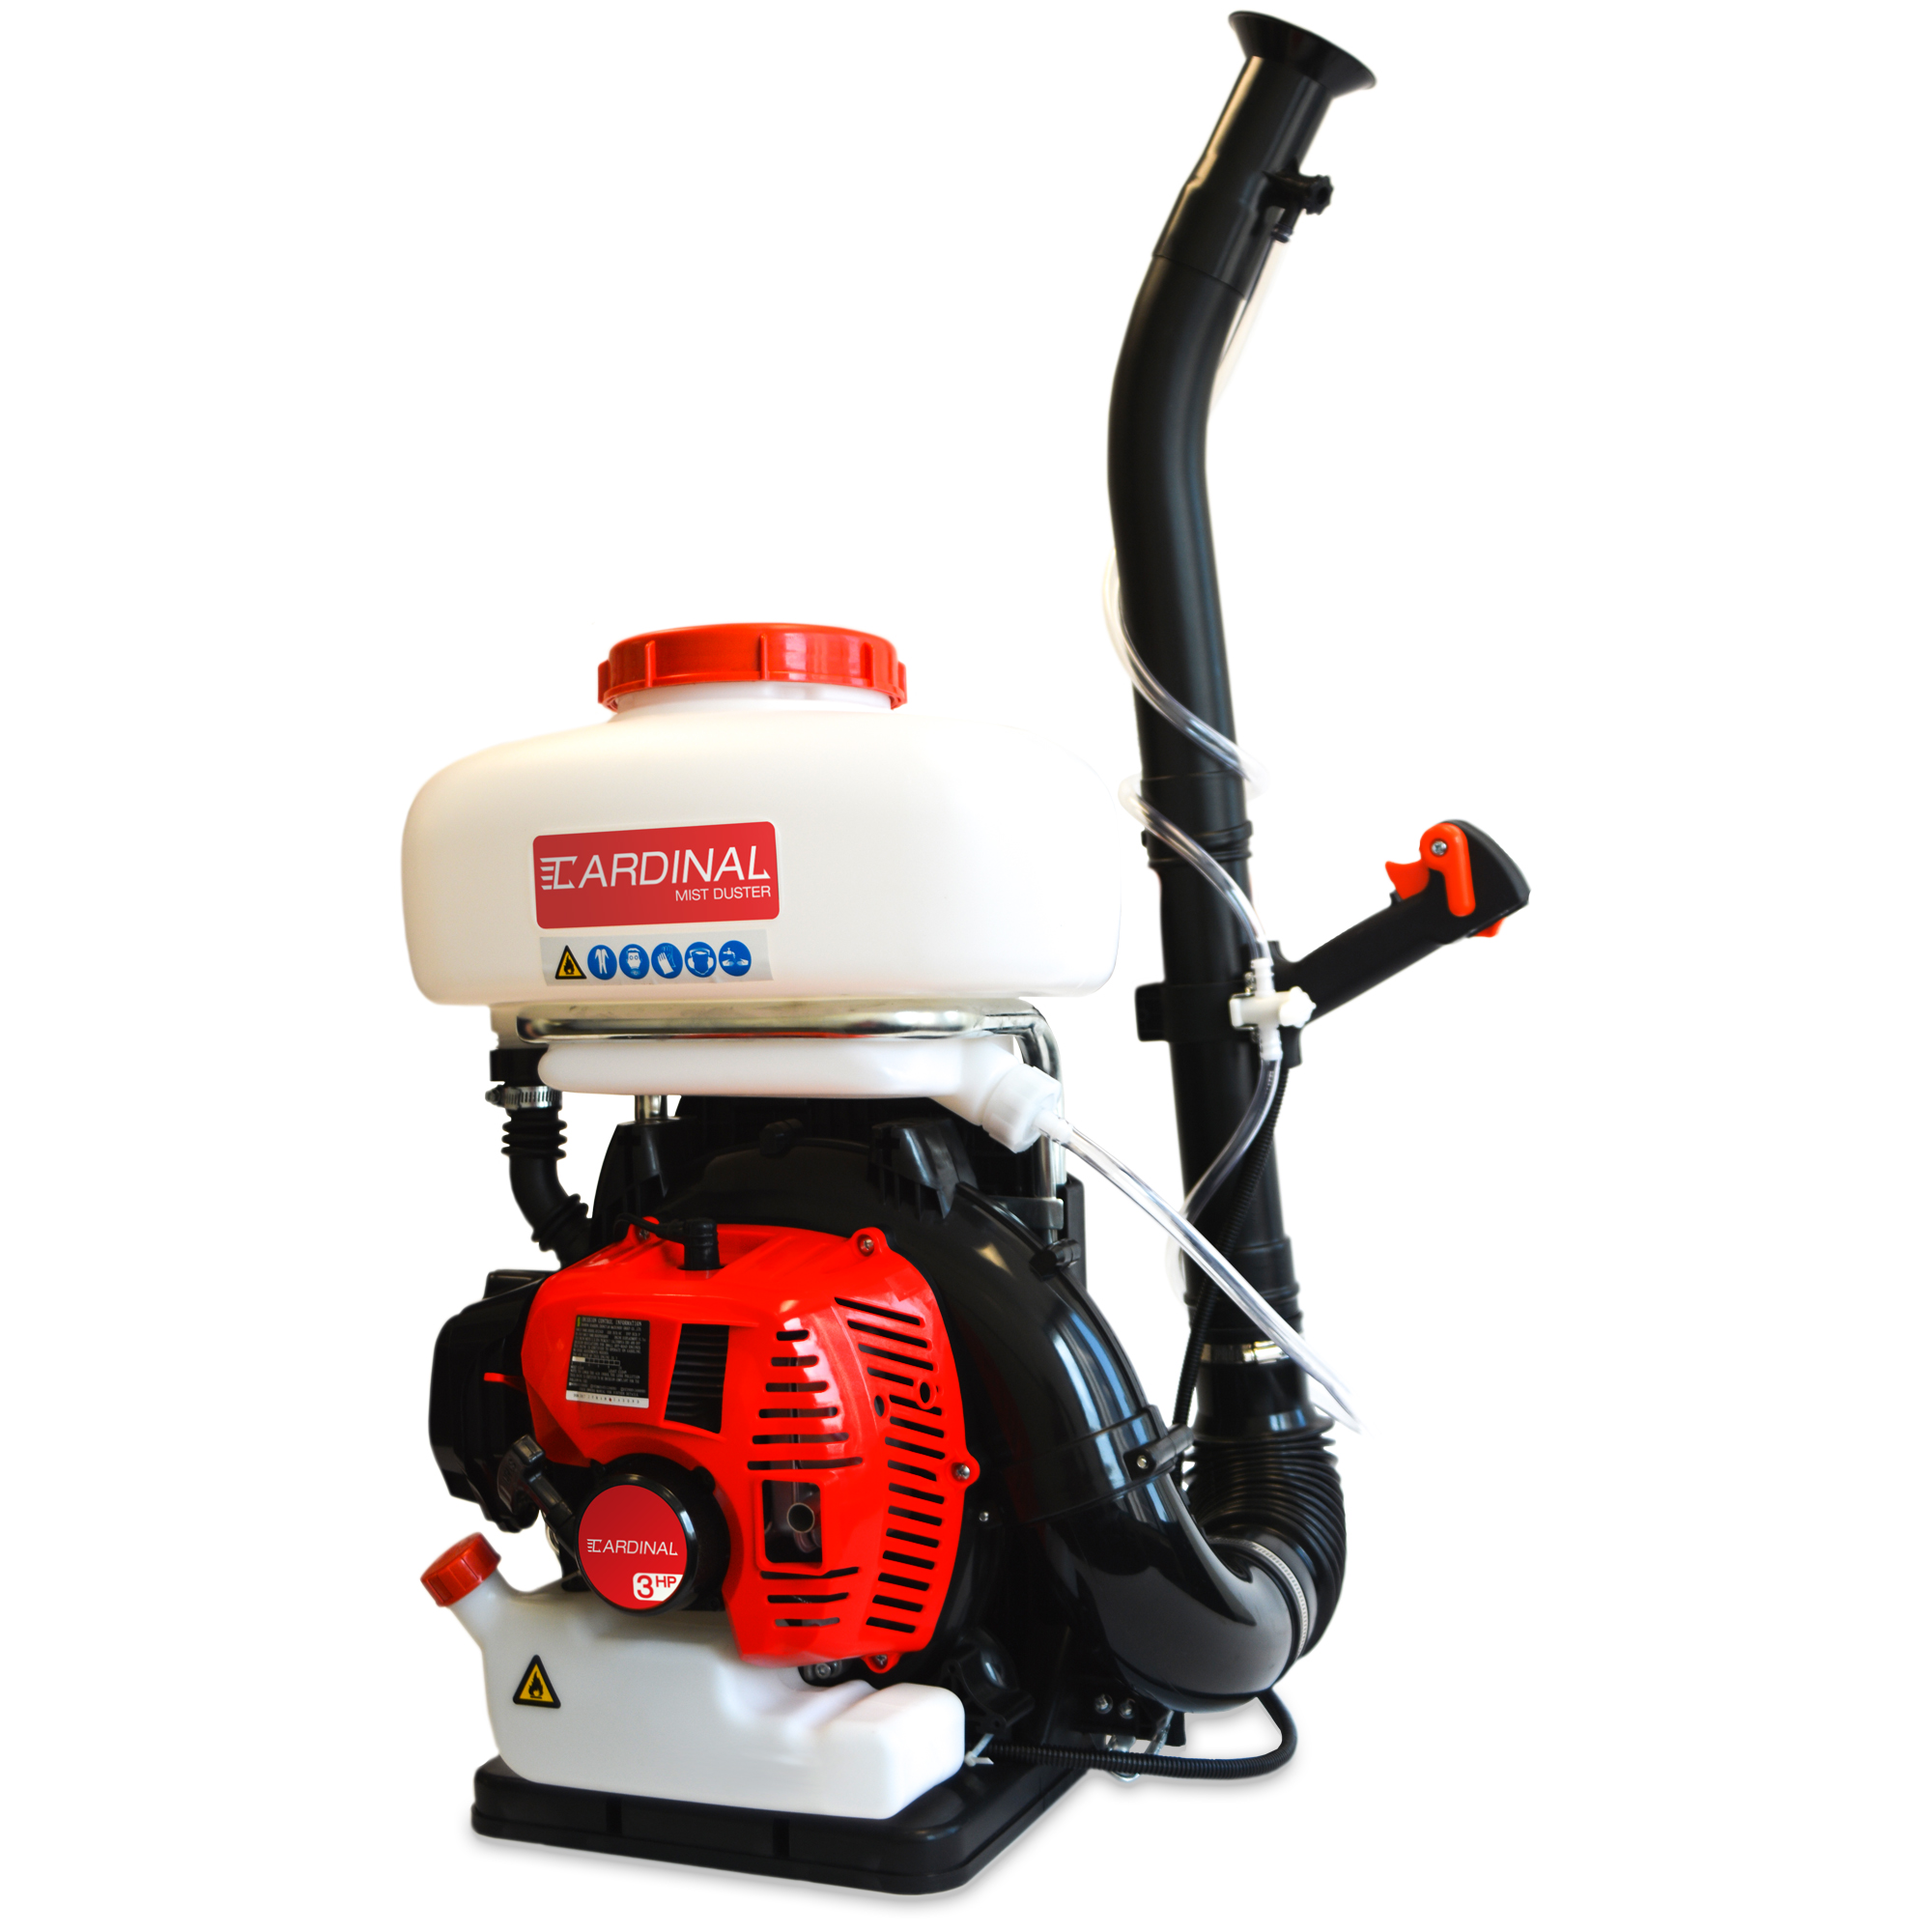 3HP Backpack Fogger Blower Duster Leafblower 3-in-1 Sprayer with 3.5 Gal Chemical Tank for Pest Control